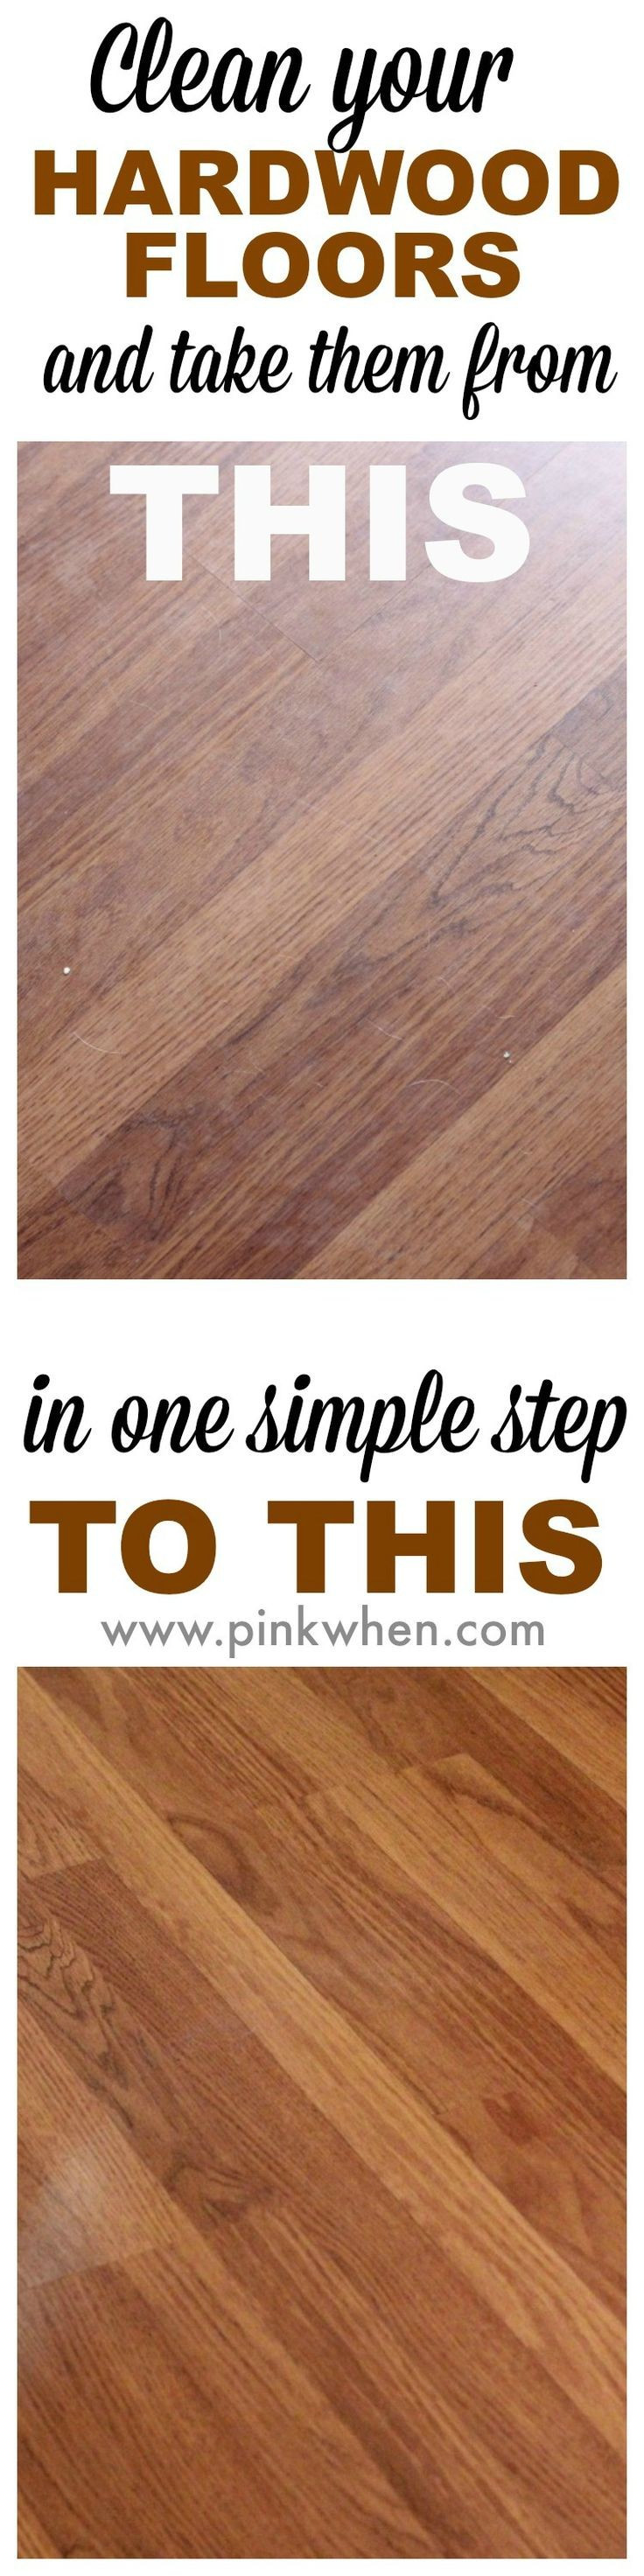 hardwood floor mop walmart of 19 awesome steam clean hardwood floors images dizpos com within 84 best hardwood floor care tips images on pinterest